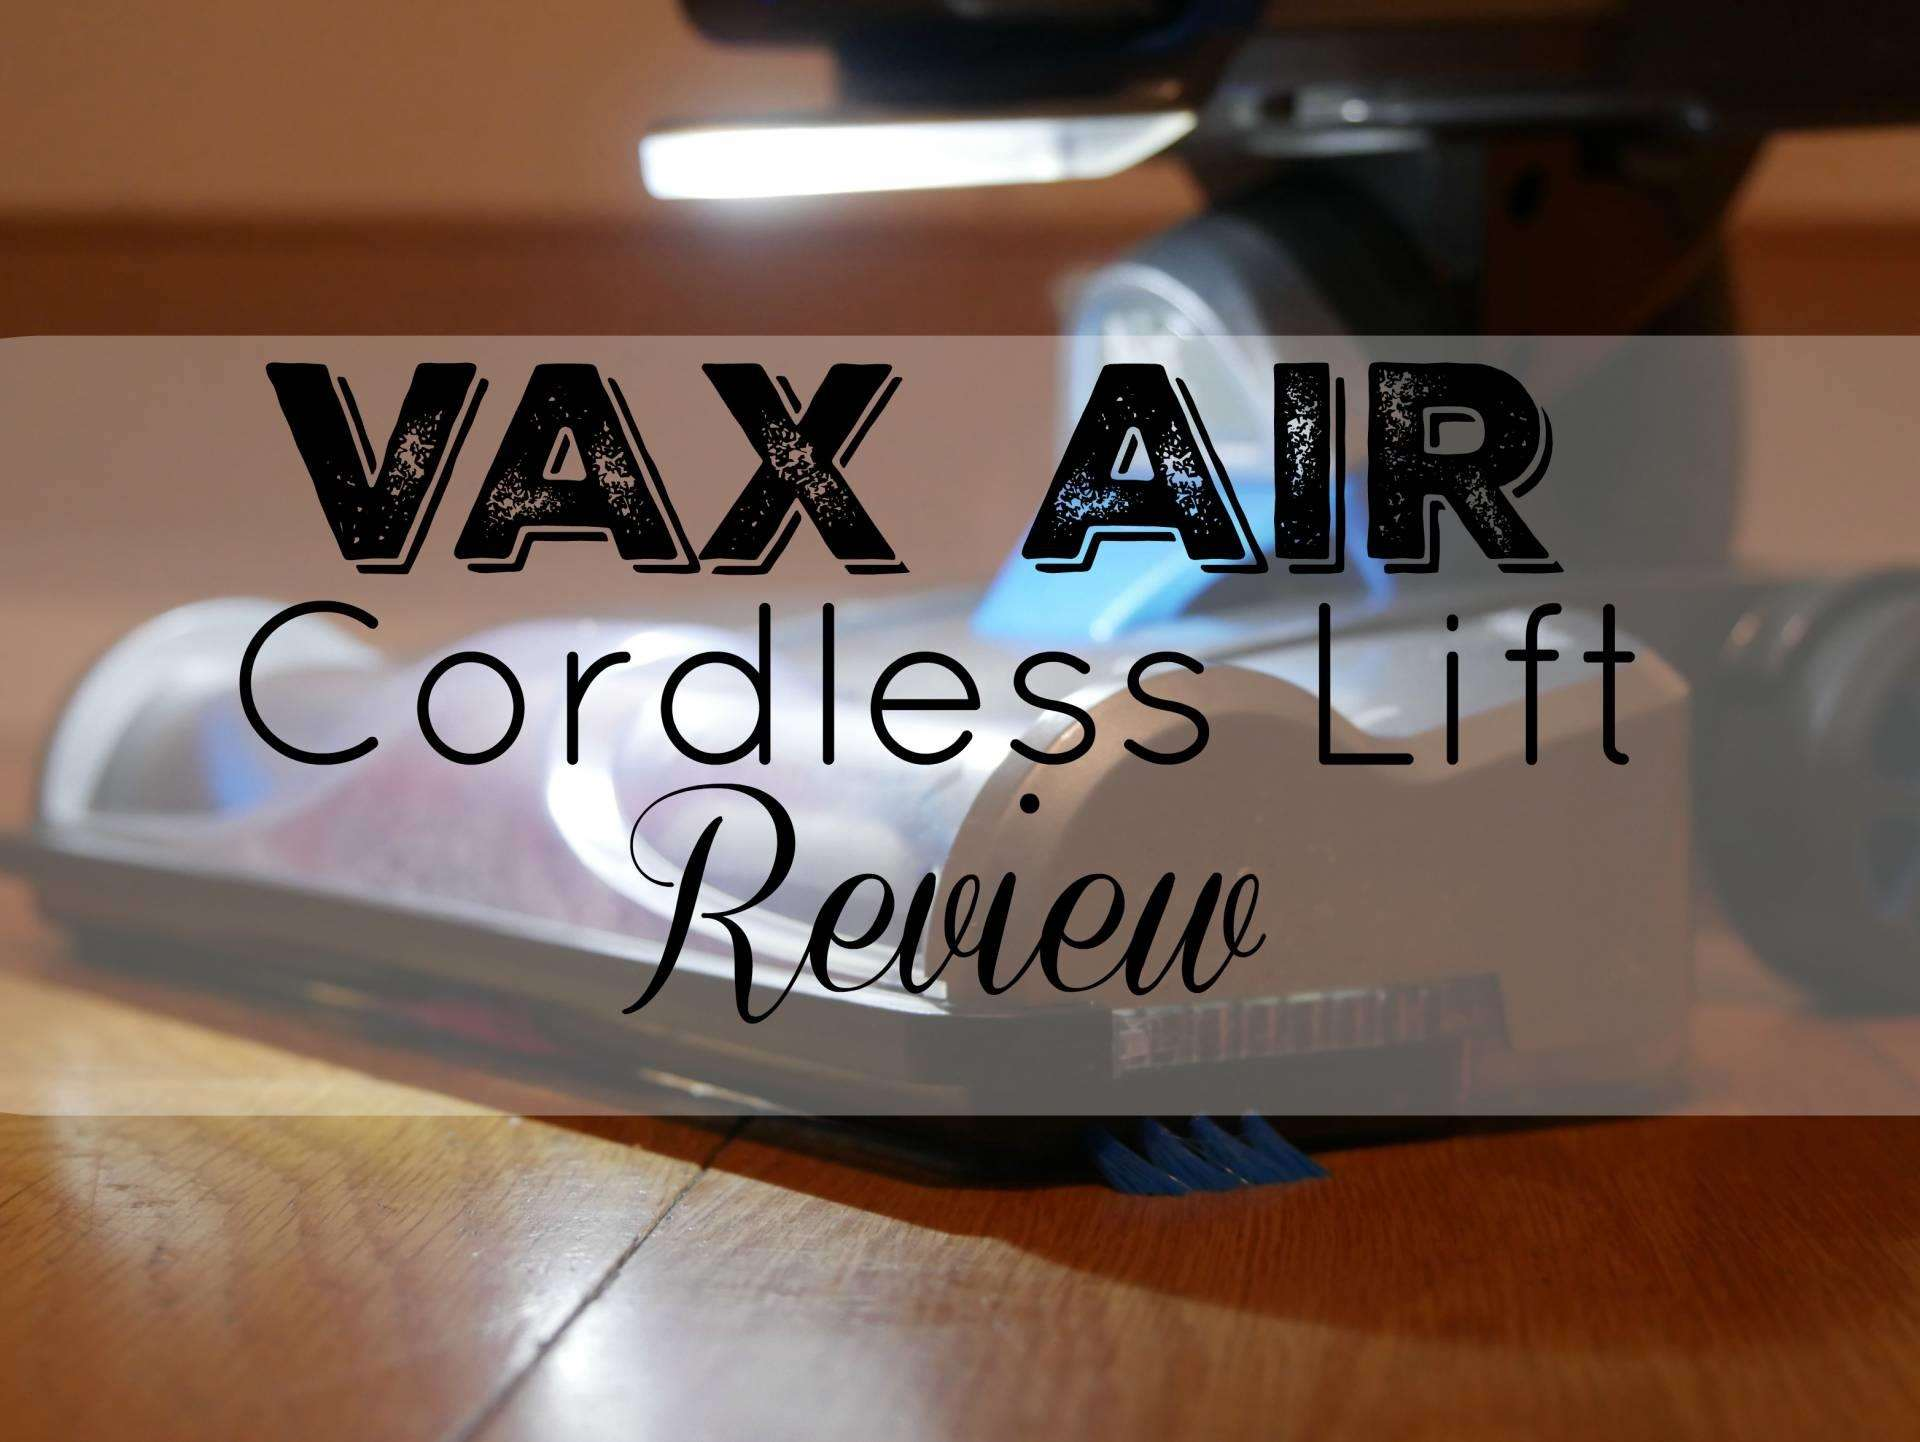 Vax Air Cordless Lift Review, Vax Air Cordless lift review FT%, product-review%